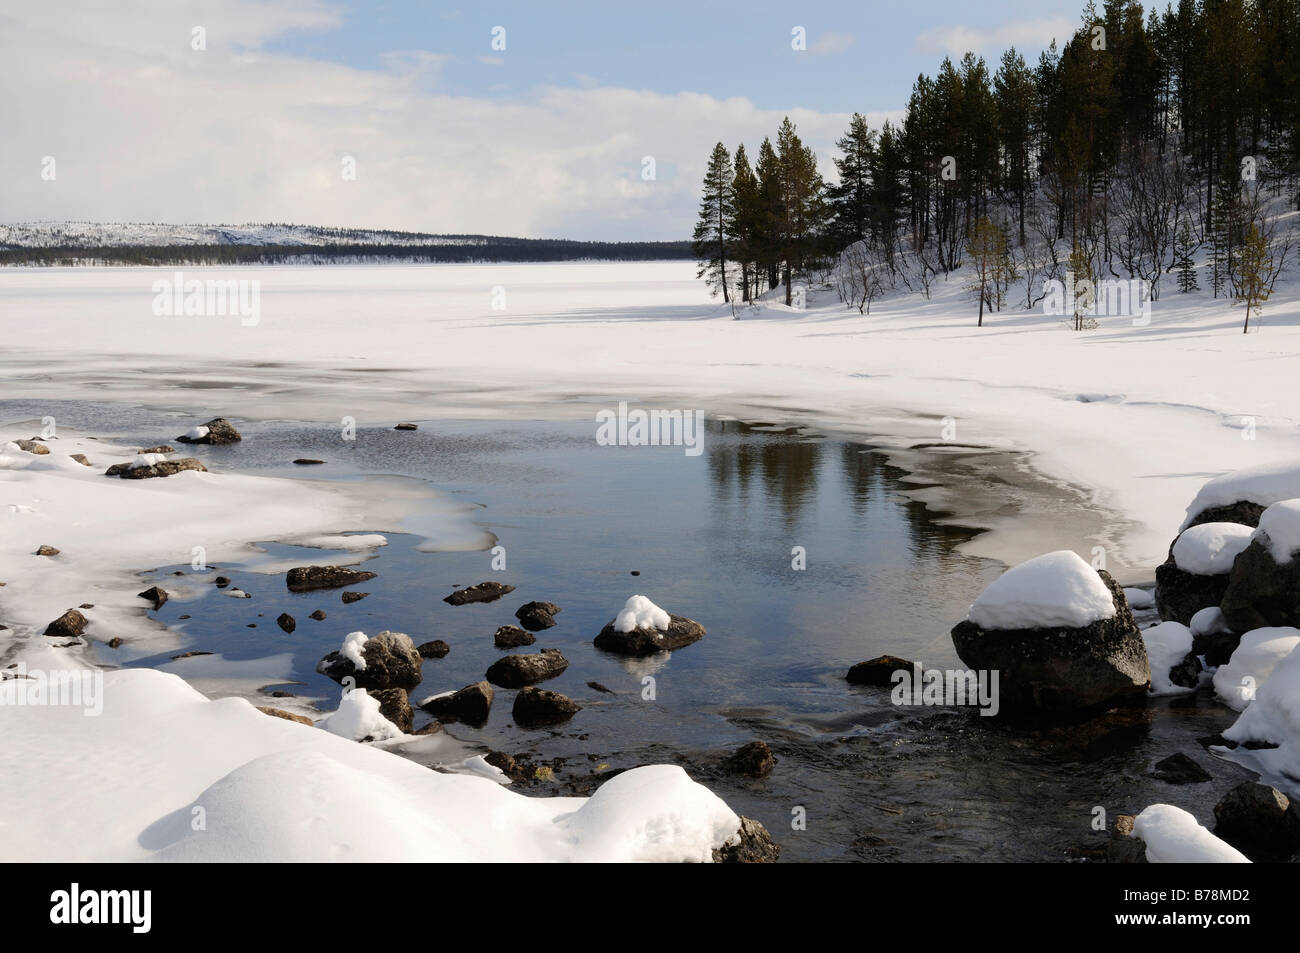 Inari Lake near Partakko, Finland, Europe - Stock Image